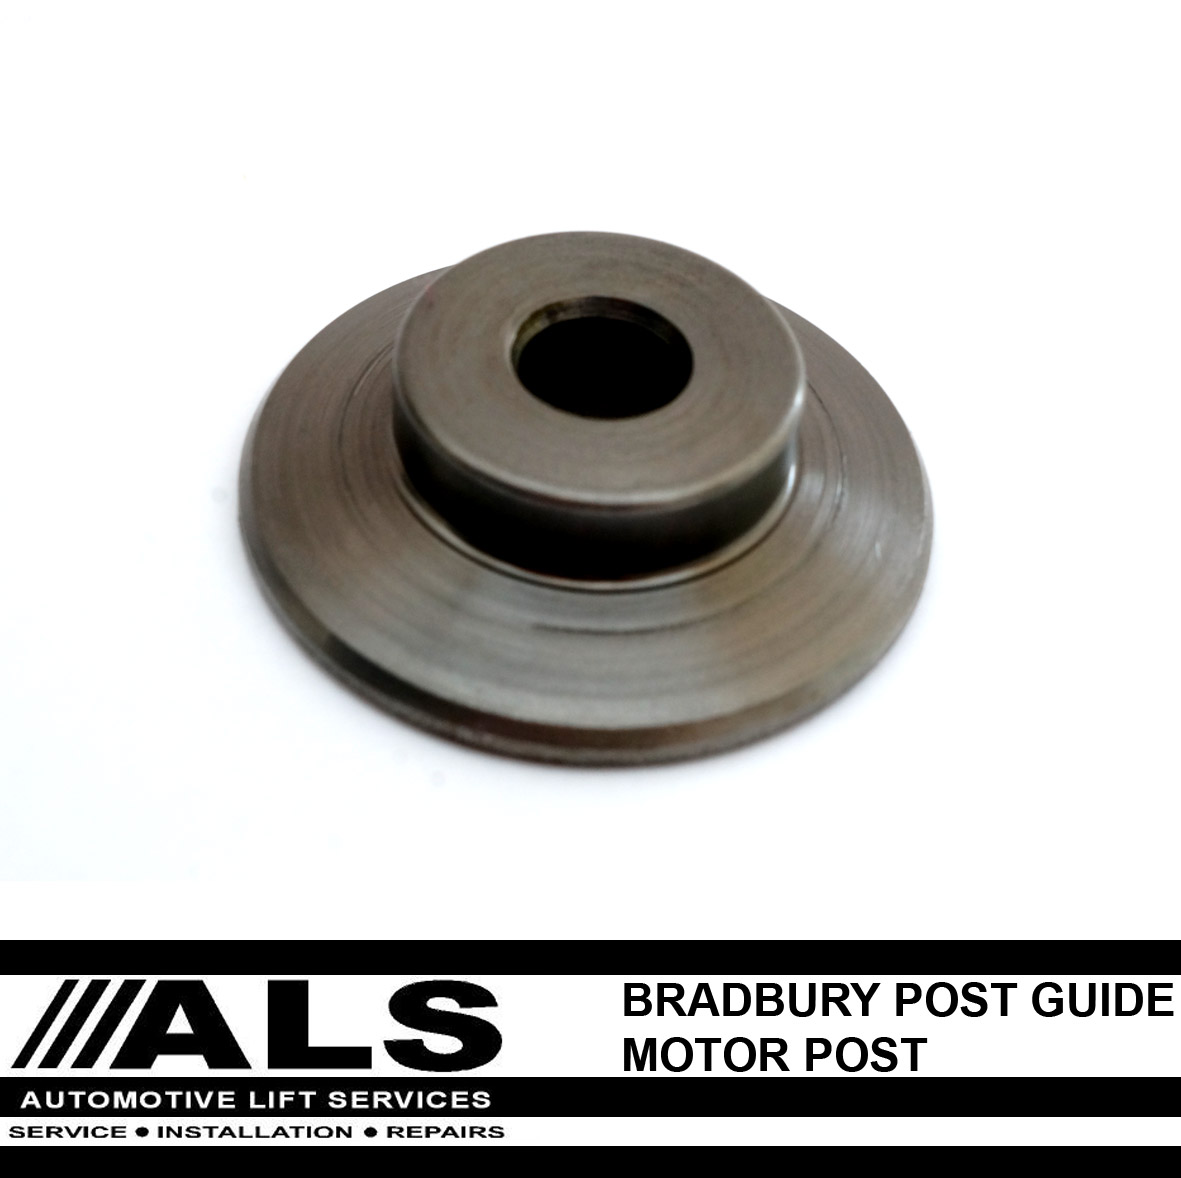 Bradbury 735 post guides - non motor post